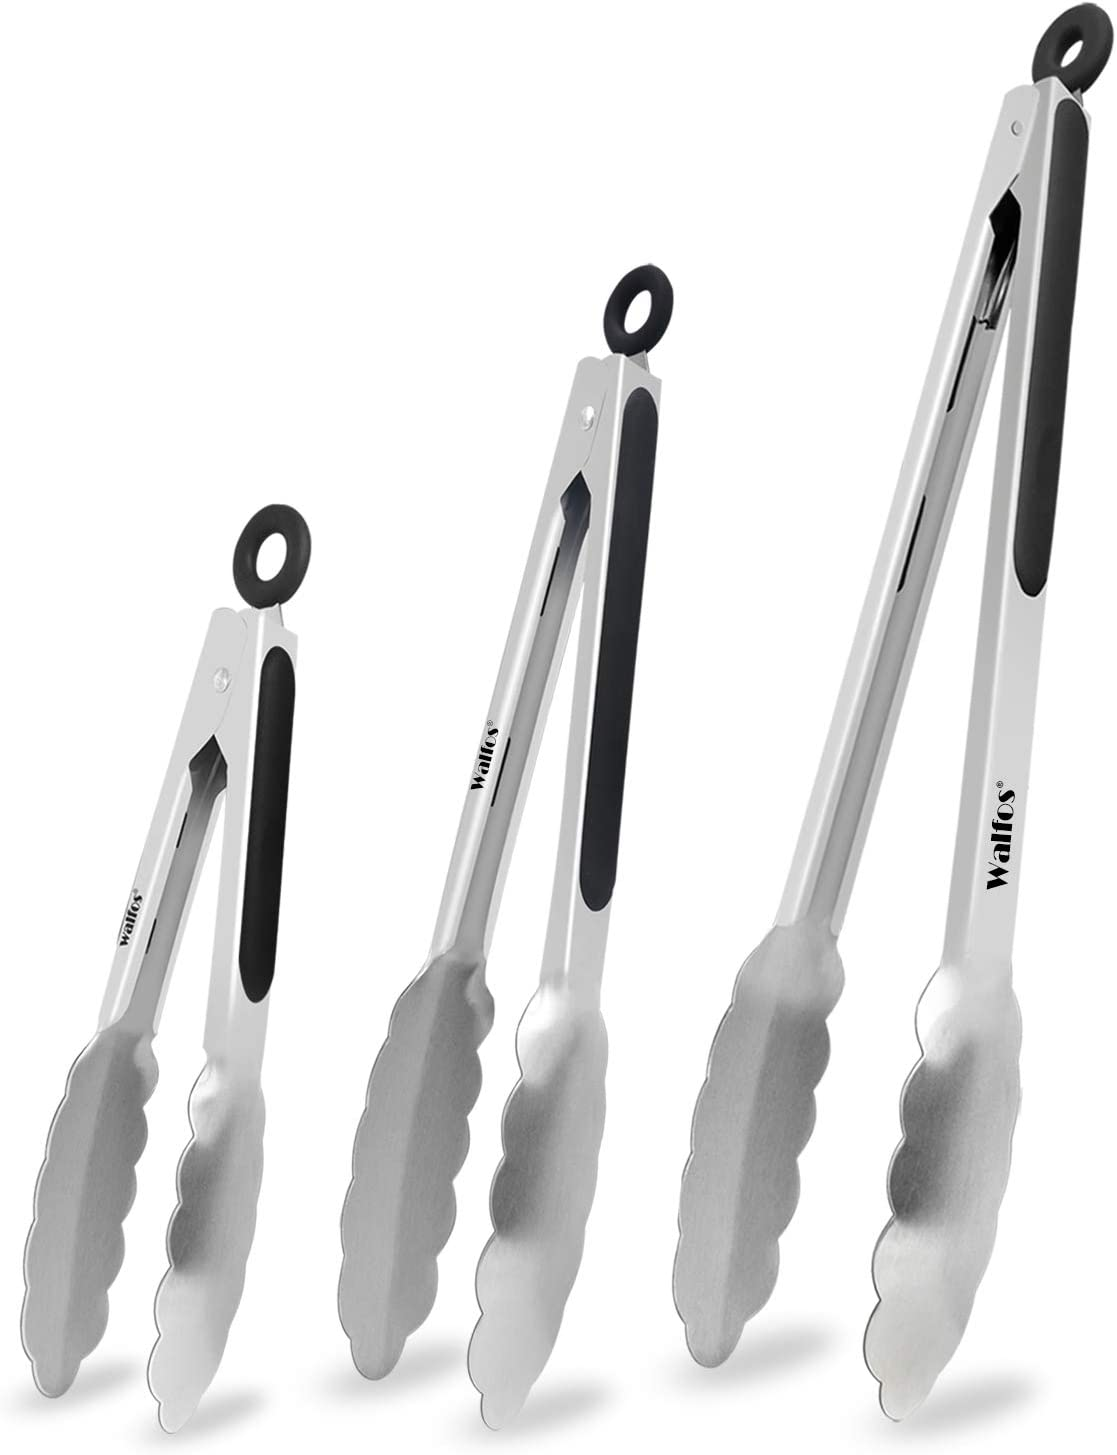 Food Grade Stainless Steel Kitchen Tongs for Cooking,BBQ - 7 ,9 and 12 Inch,Set of 3 Heavy Duty Locking Metal Food Tongs Non-Slip Grip